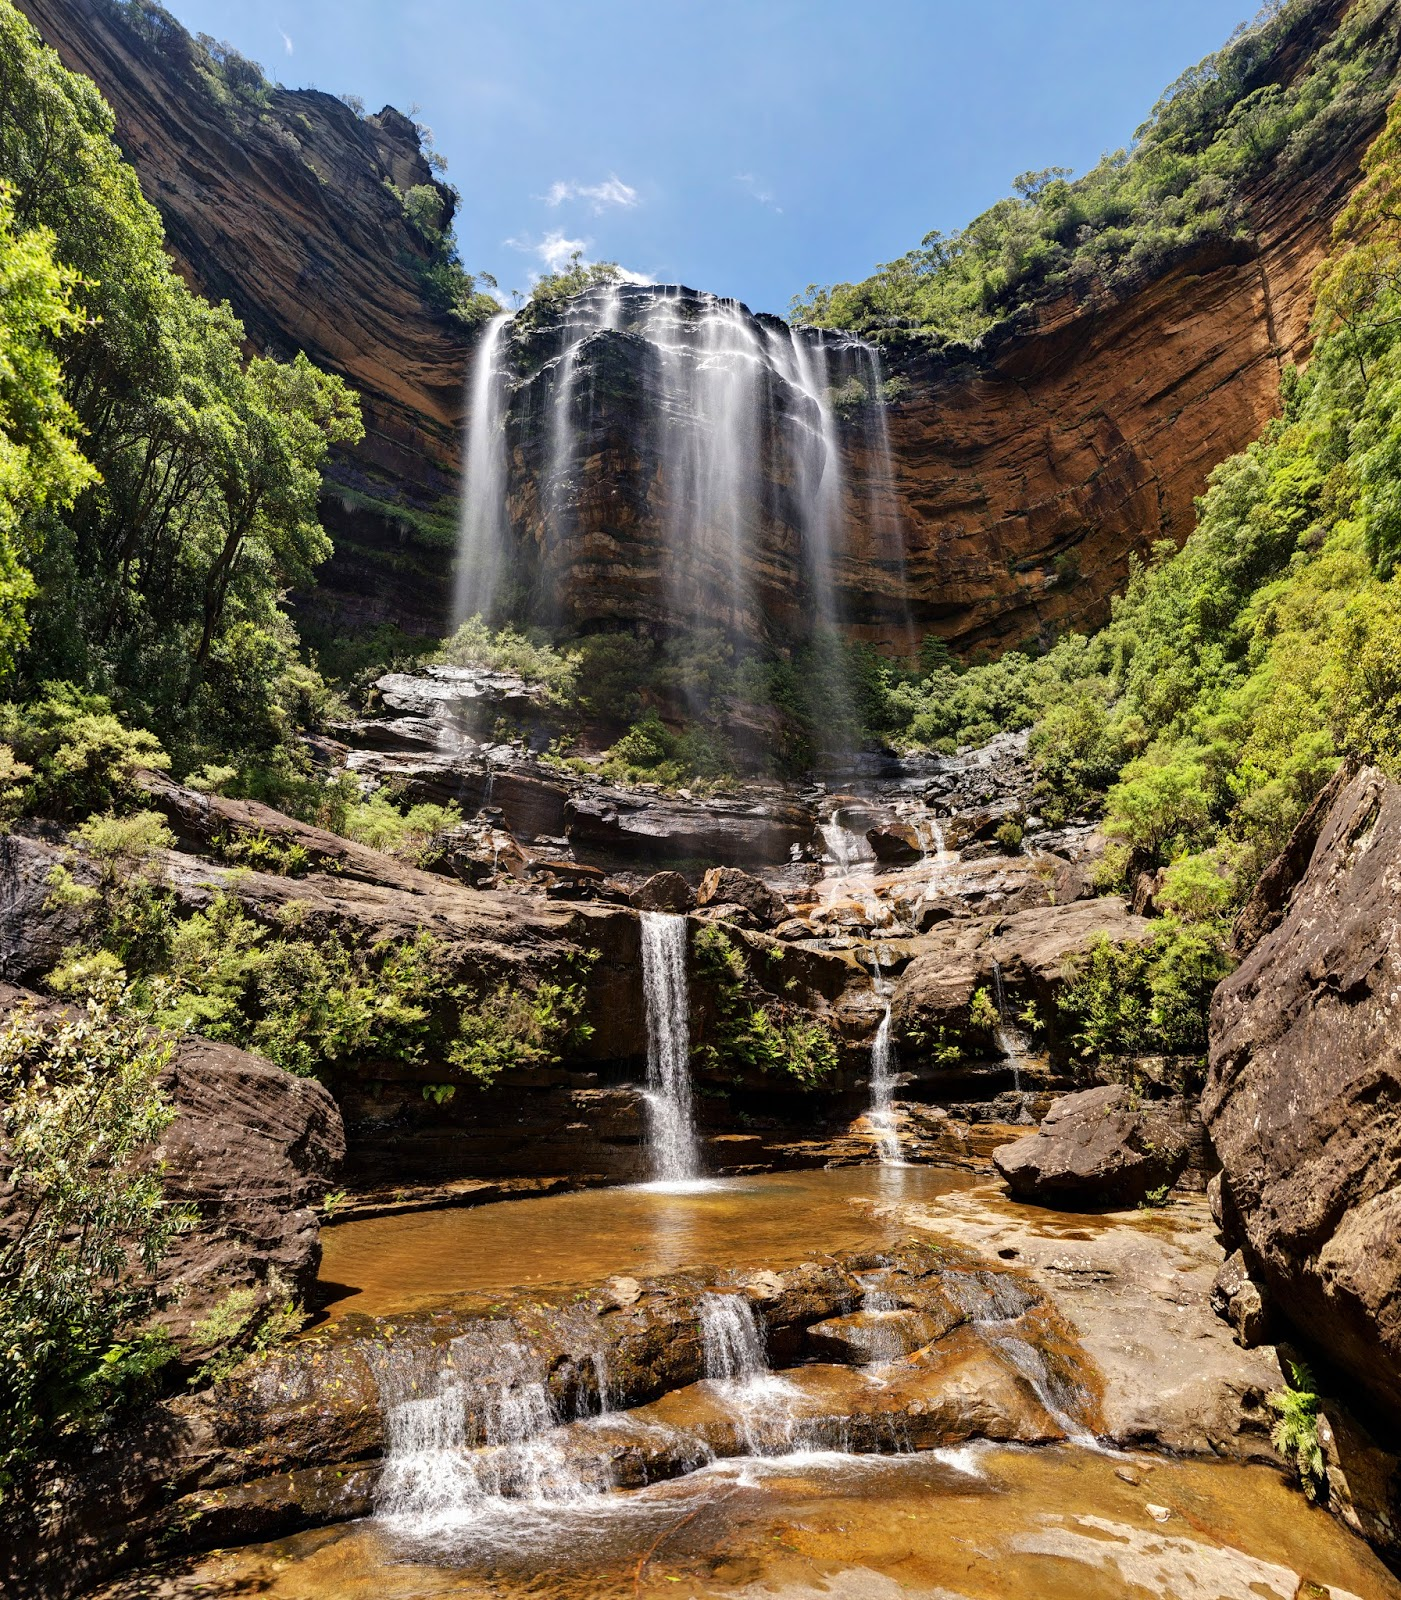 Wentworth Australia  City new picture : Travel Trip Journey: Wentworth Falls, New South Wales Australia